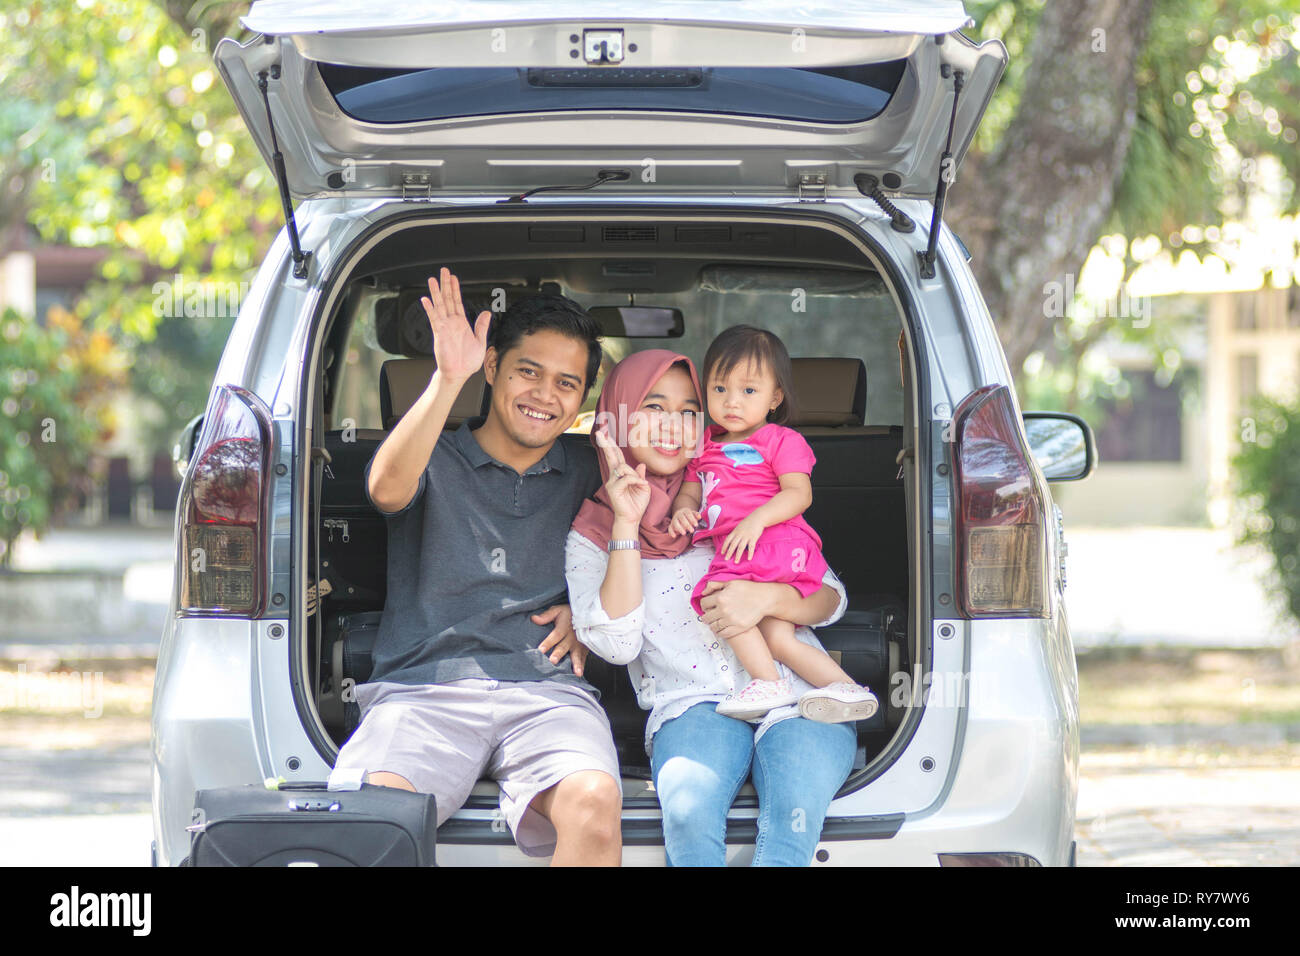 young muslim family, transport, leisure, road trip and people concept - happy man, woman and little girl sitting on trunk of hatchback car and waving - Stock Image